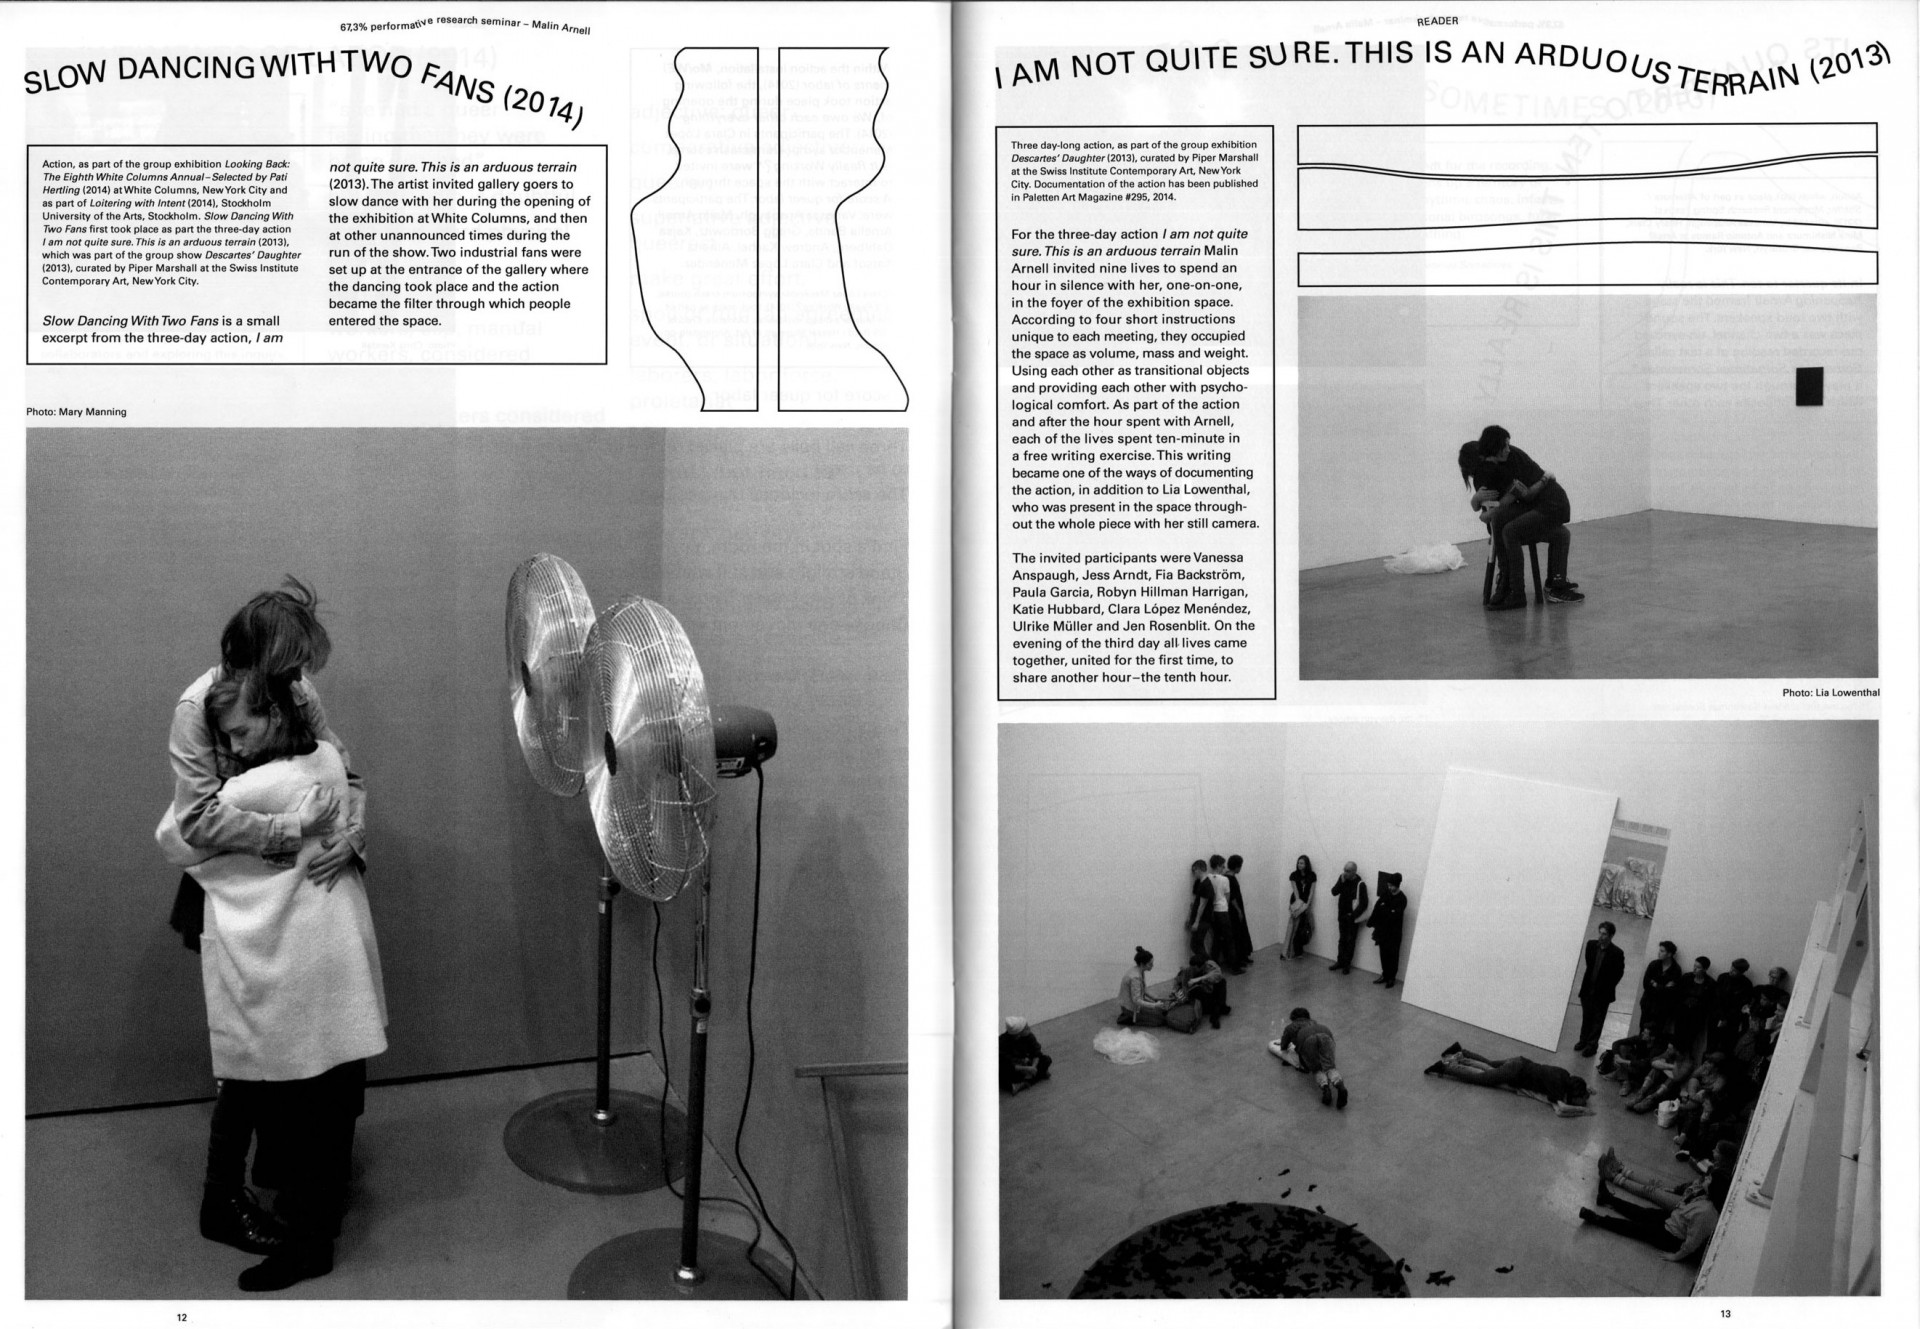 Sara Kaaman 67,3% performative research seminar – publication